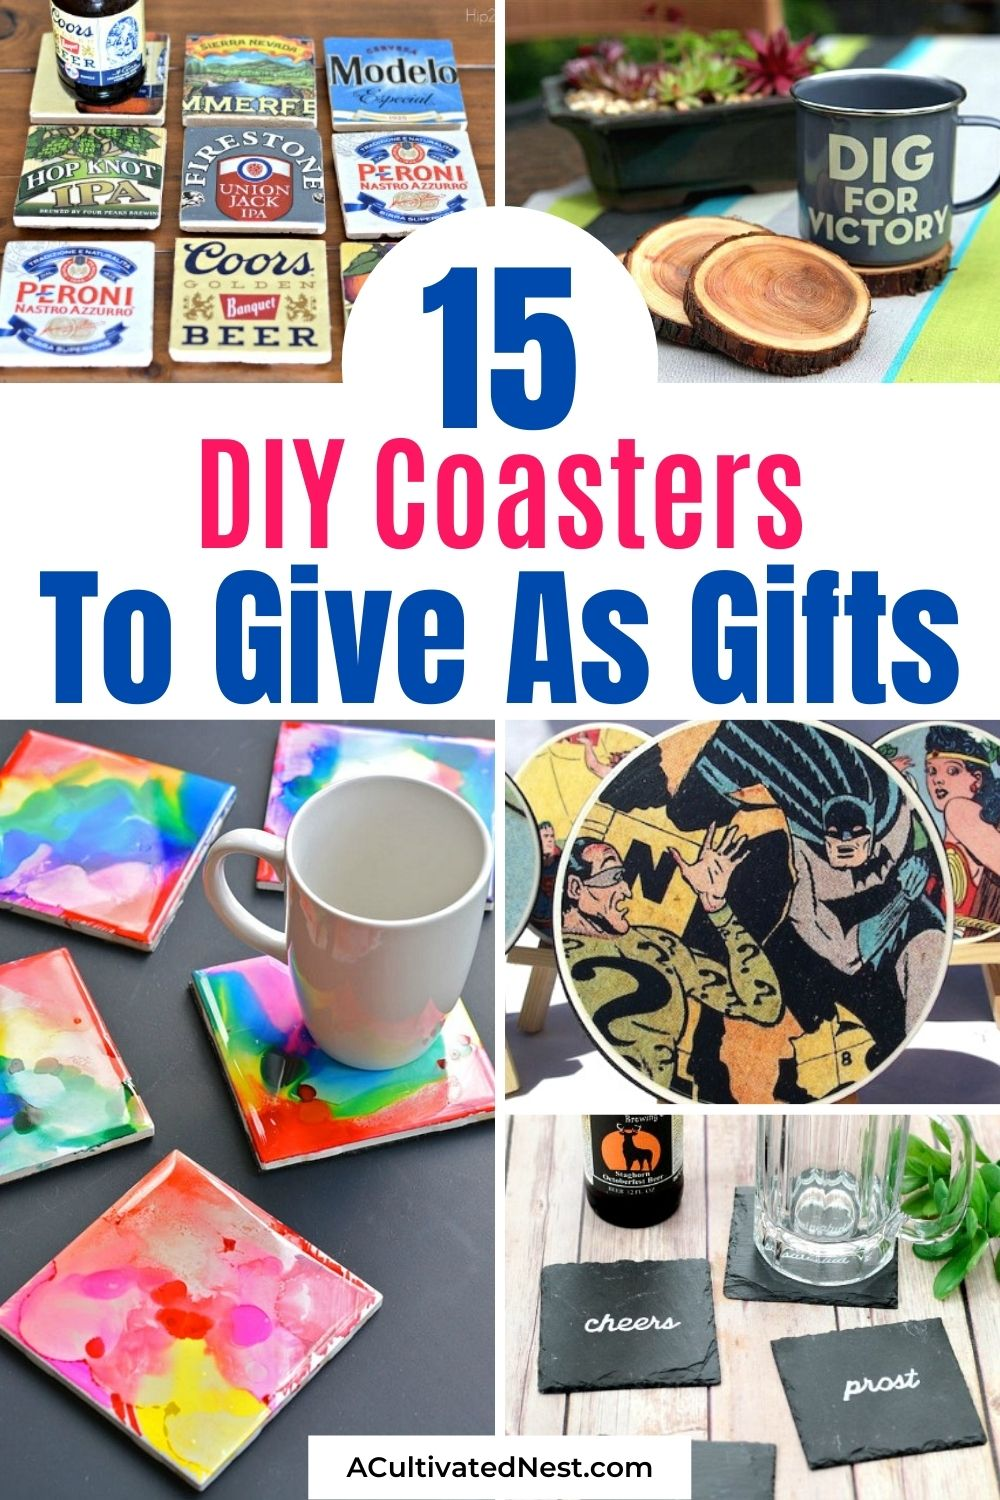 15 DIY Coasters That Make Great Gifts- These fantastic DIY coasters make great gifts and are sure to put a smile on anyone's face! They are easy to make, too! | #diyGift #homemadeGift #craft #coasters #ACultivatedNest